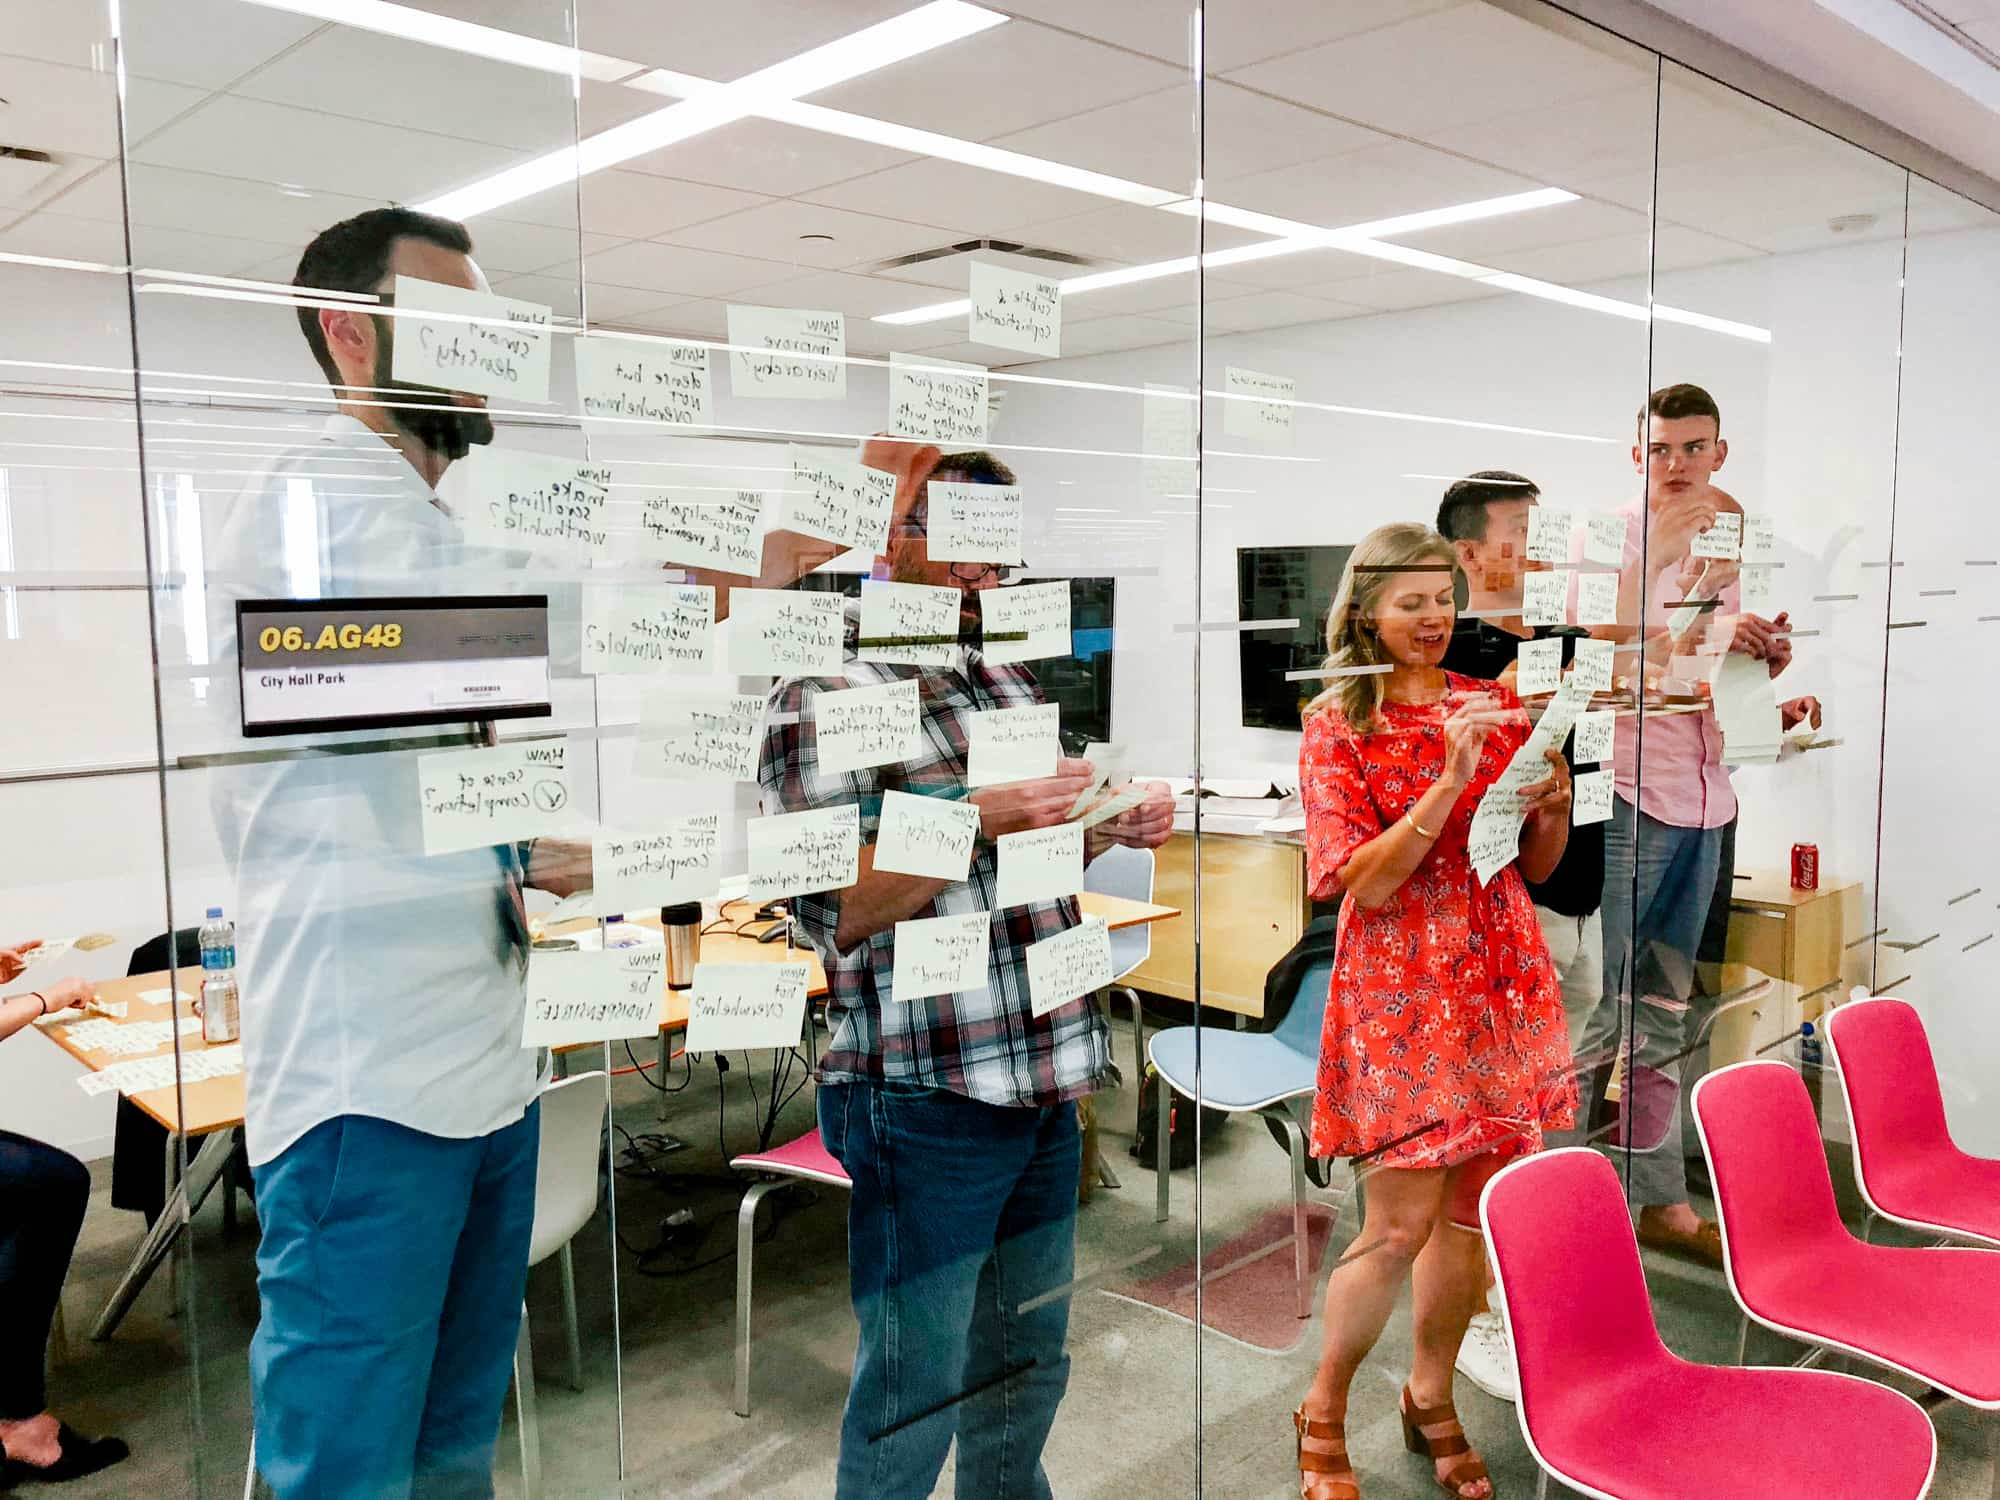 The WSJ Design team at a recent design sprint